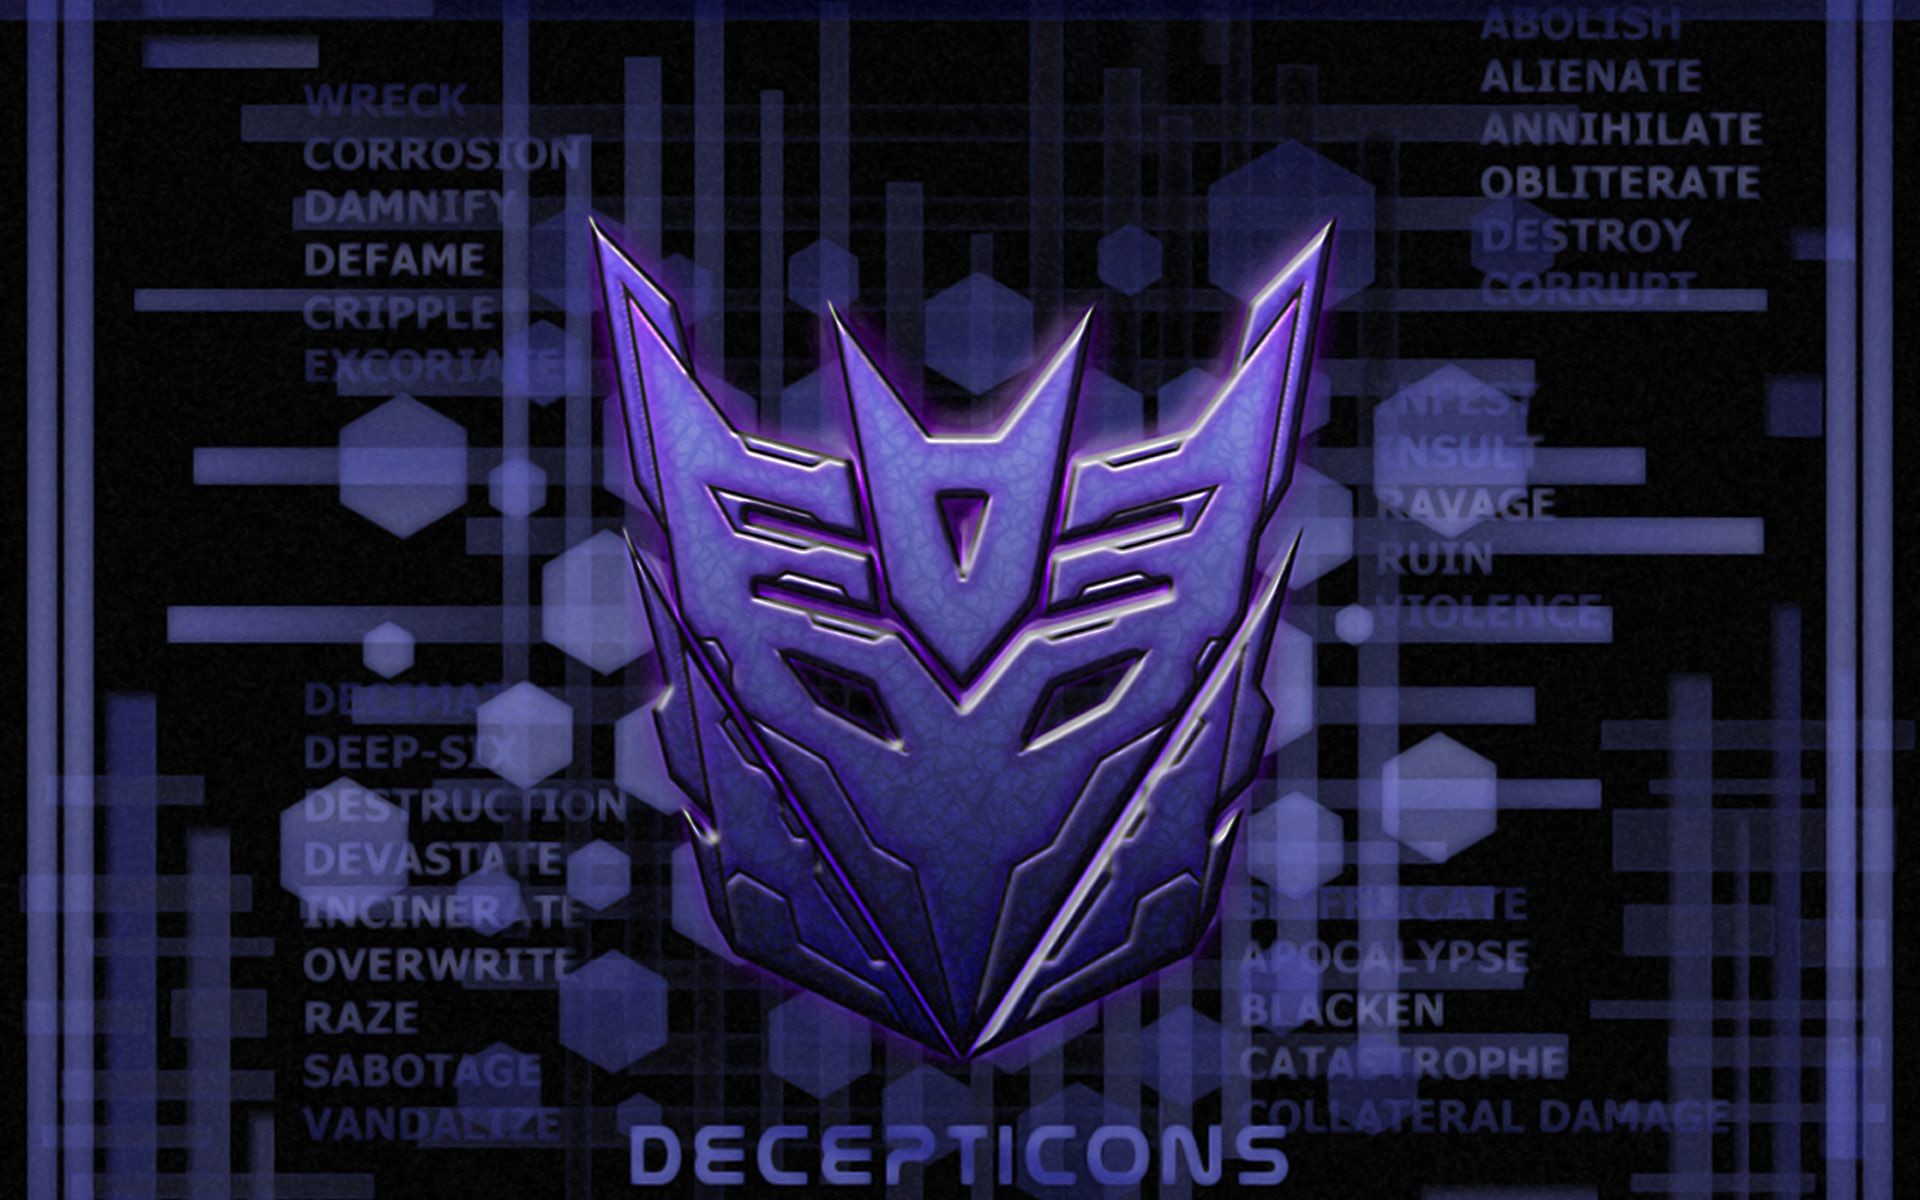 Res: 1920x1200, wallpapers and screensavers of transformers | Transformers Decepticons Logo  On Purple Wallpaper